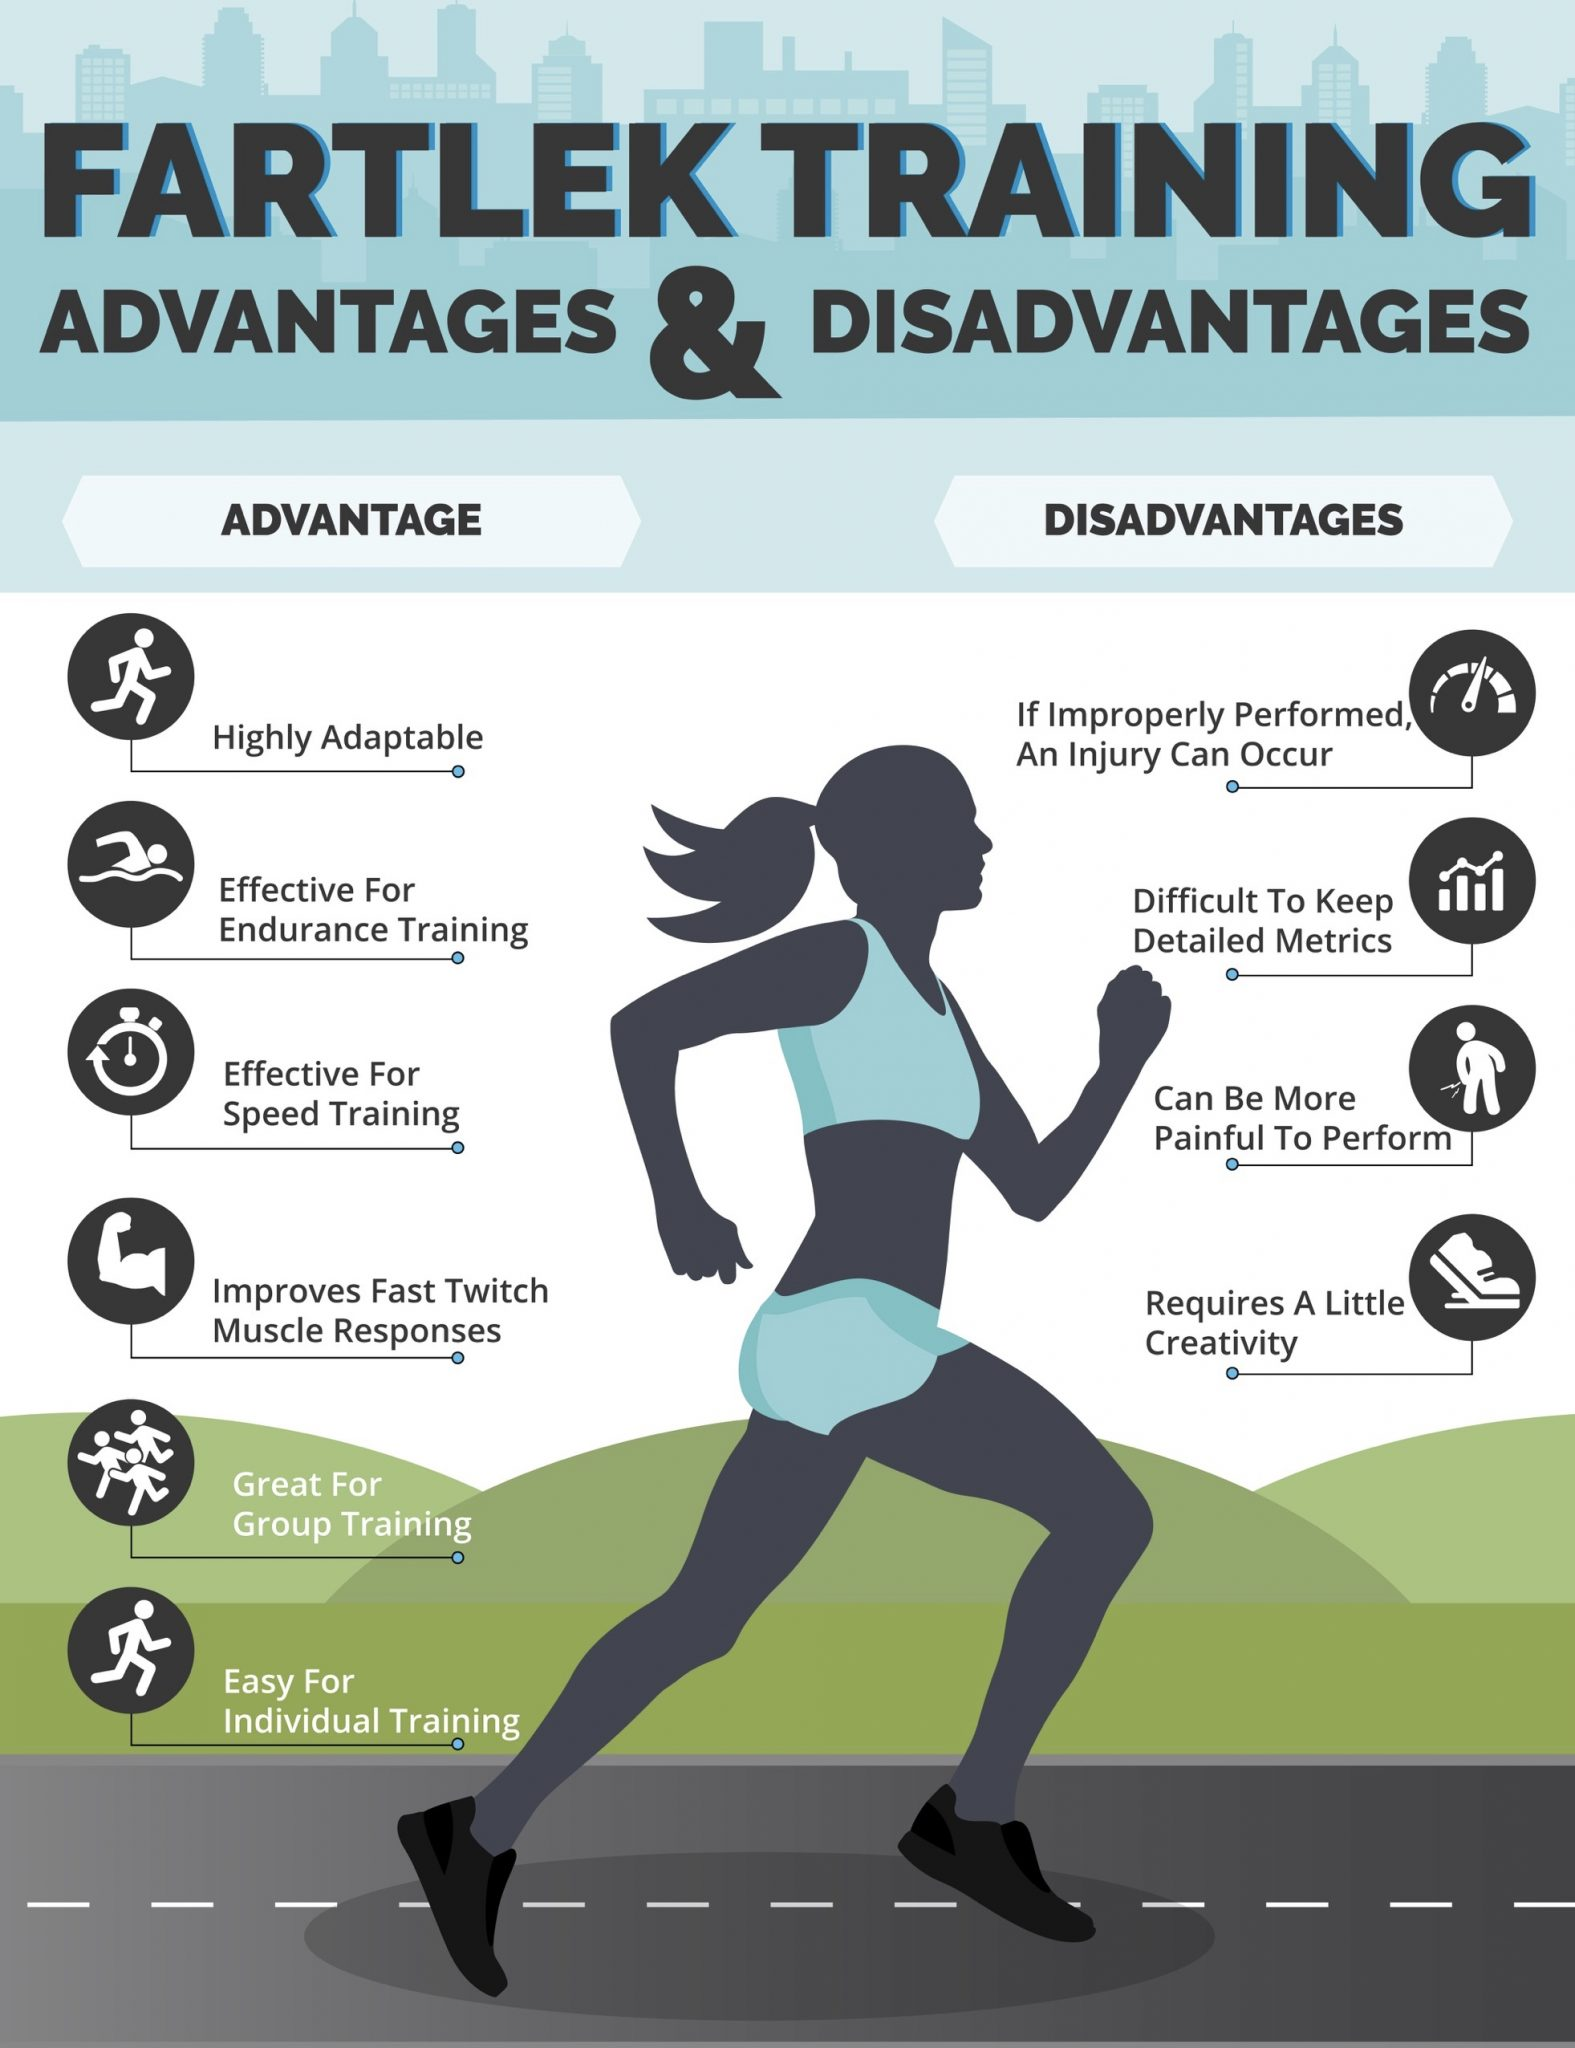 Fartlek Training Advantages and Disadvantages Infographic Thumbnail